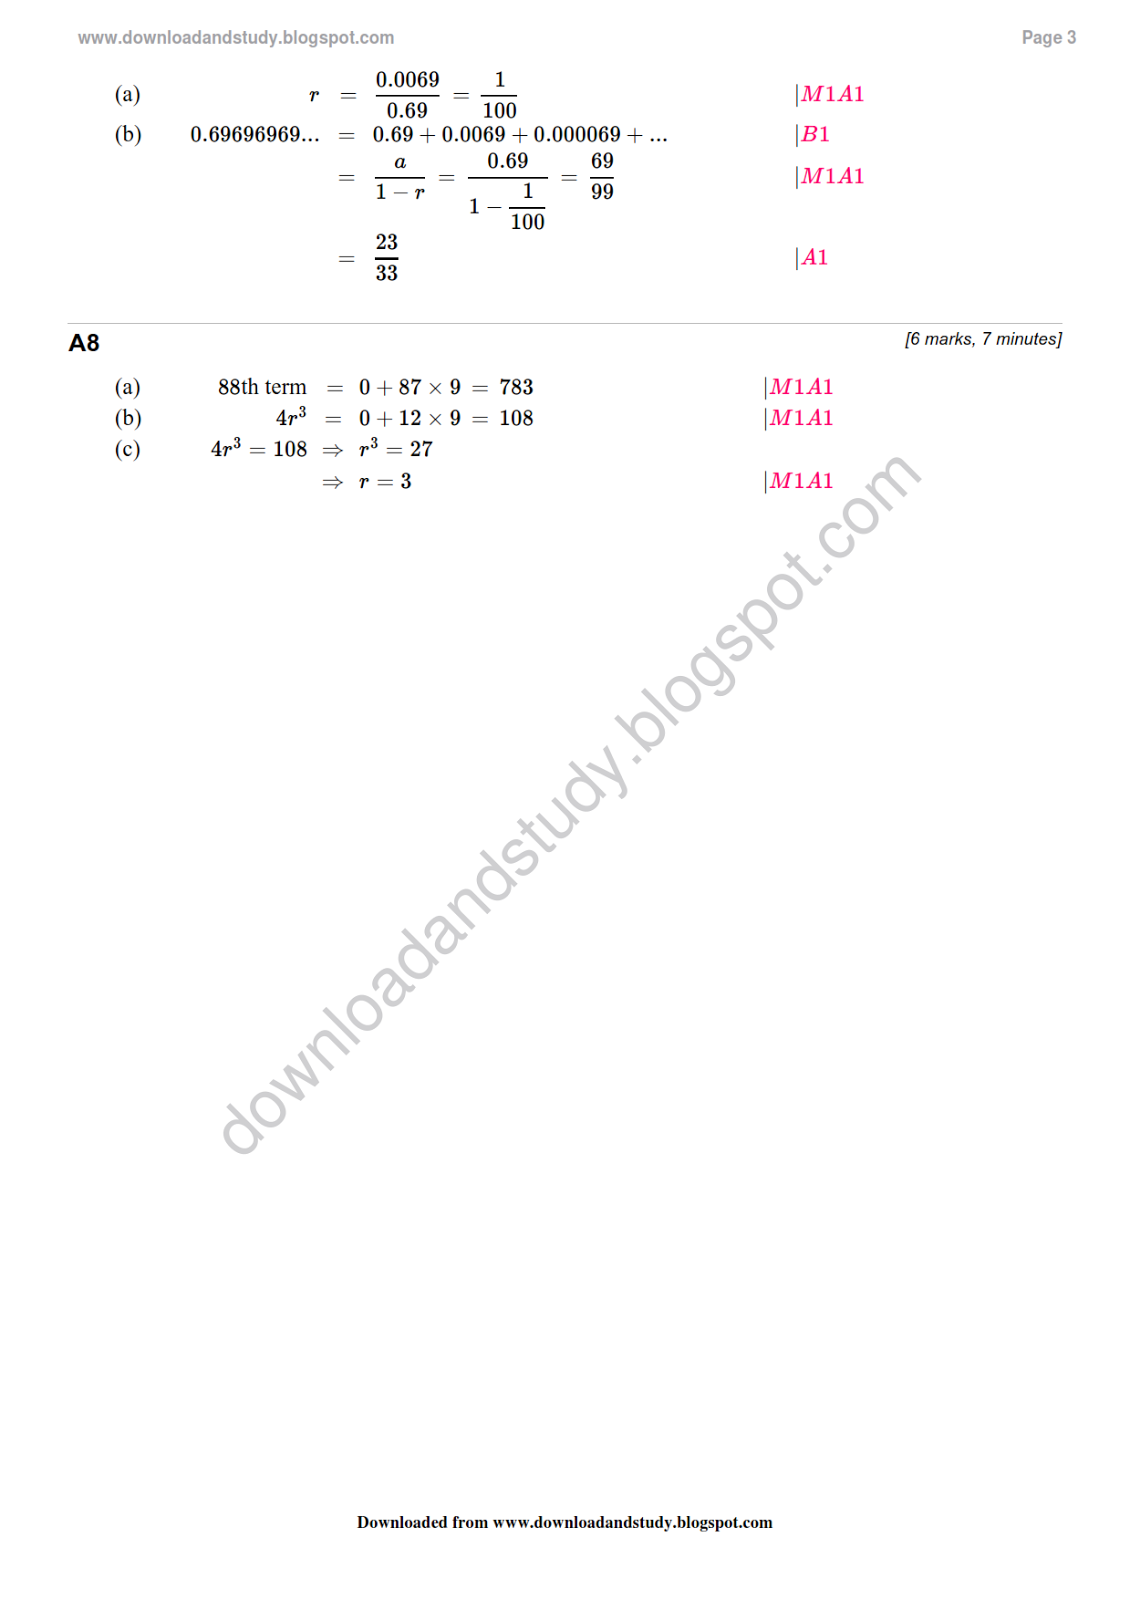 Download Amp Study Solution To As Maths Geometric Sequence